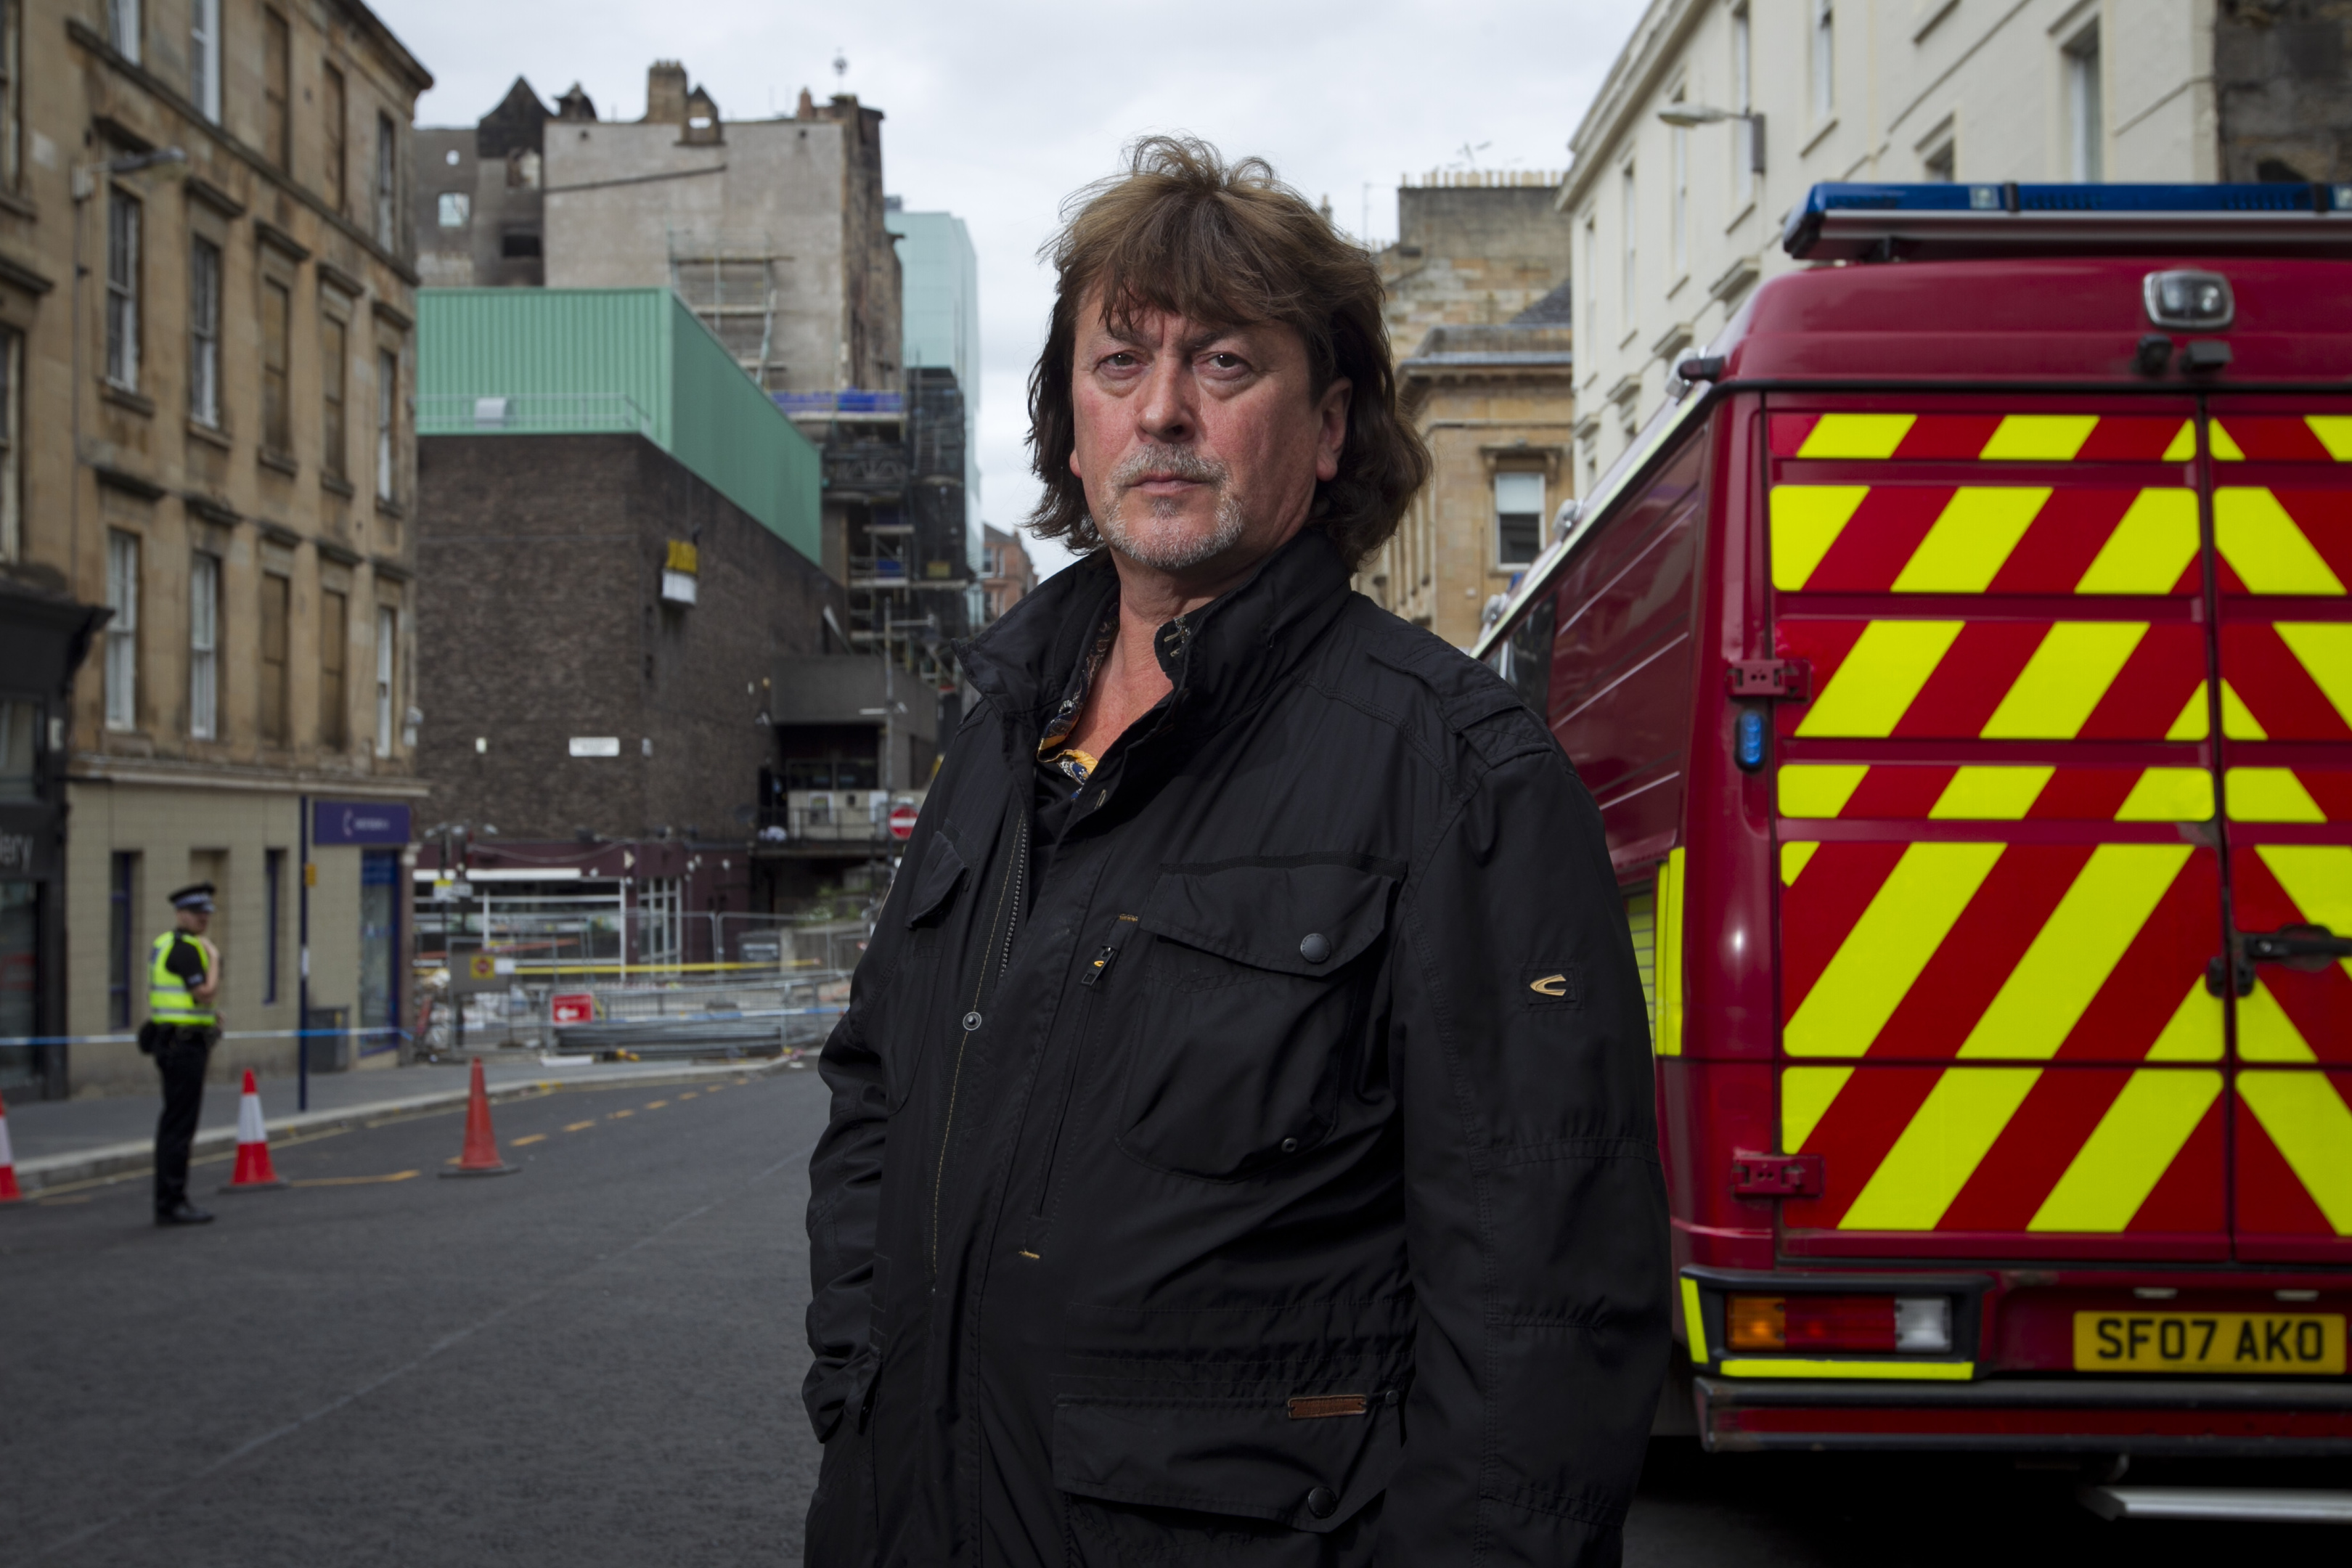 Donald MacLeod visiting the area around the Glasgow School of Art (Andrew Cawley / DC Thomson)